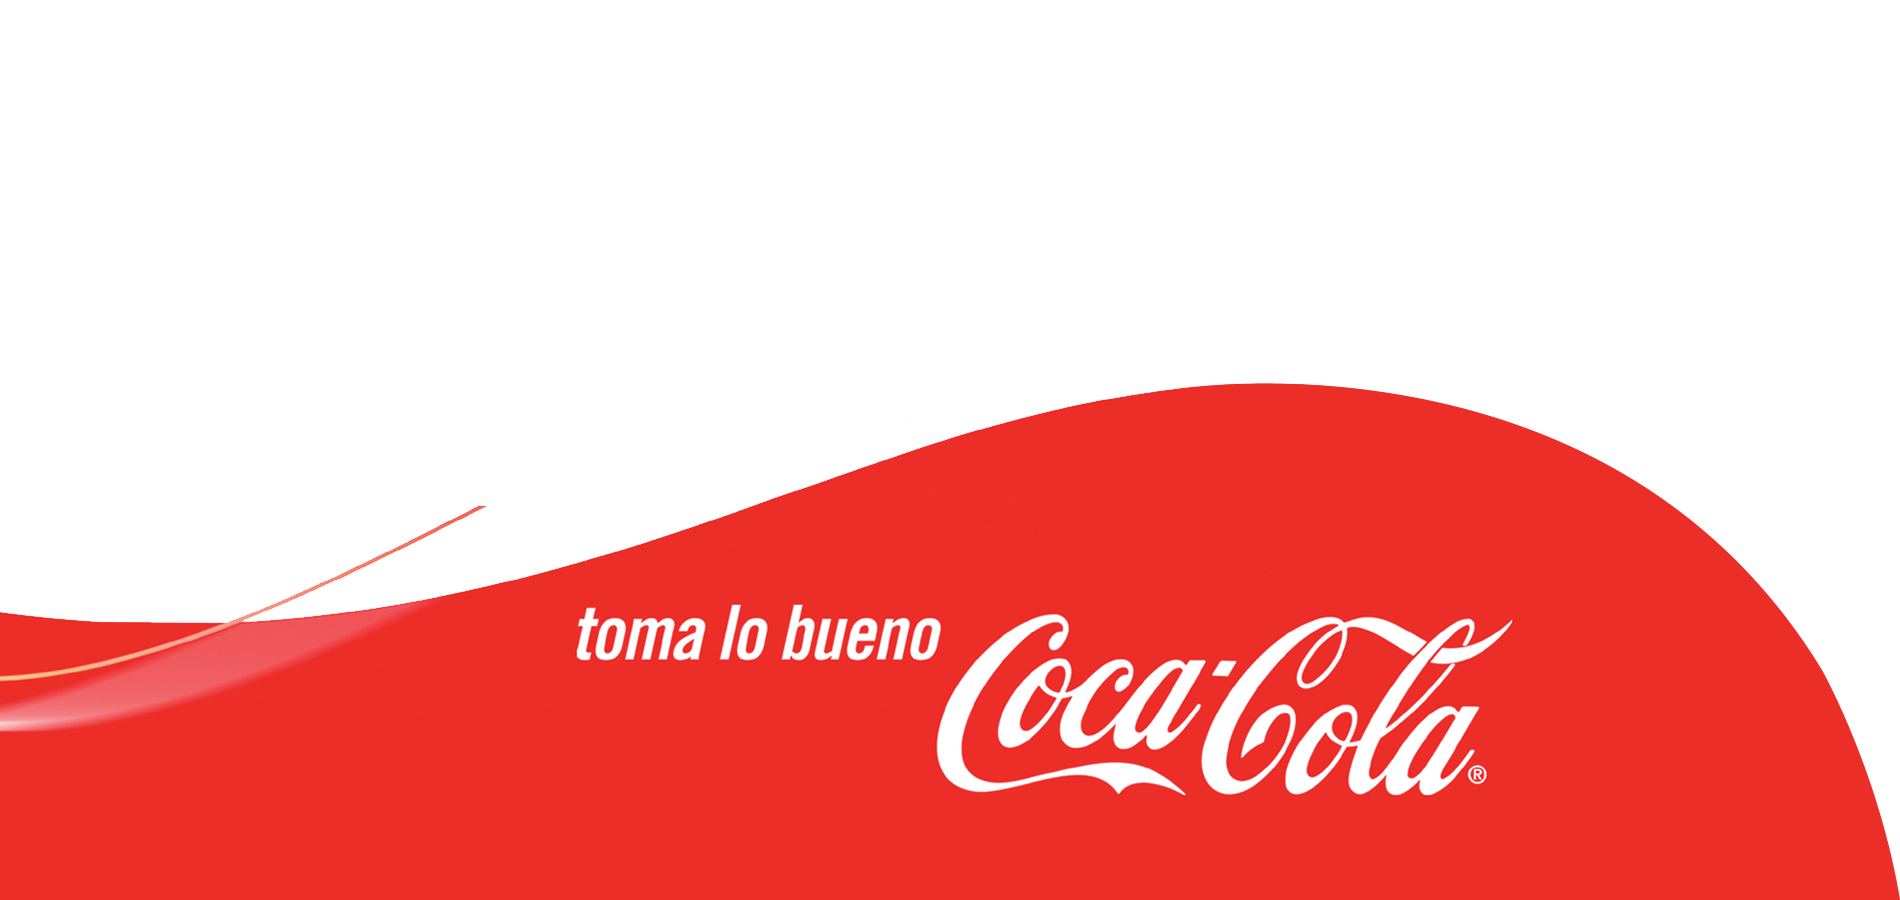 Picture Coca Cola Transparent image #41676